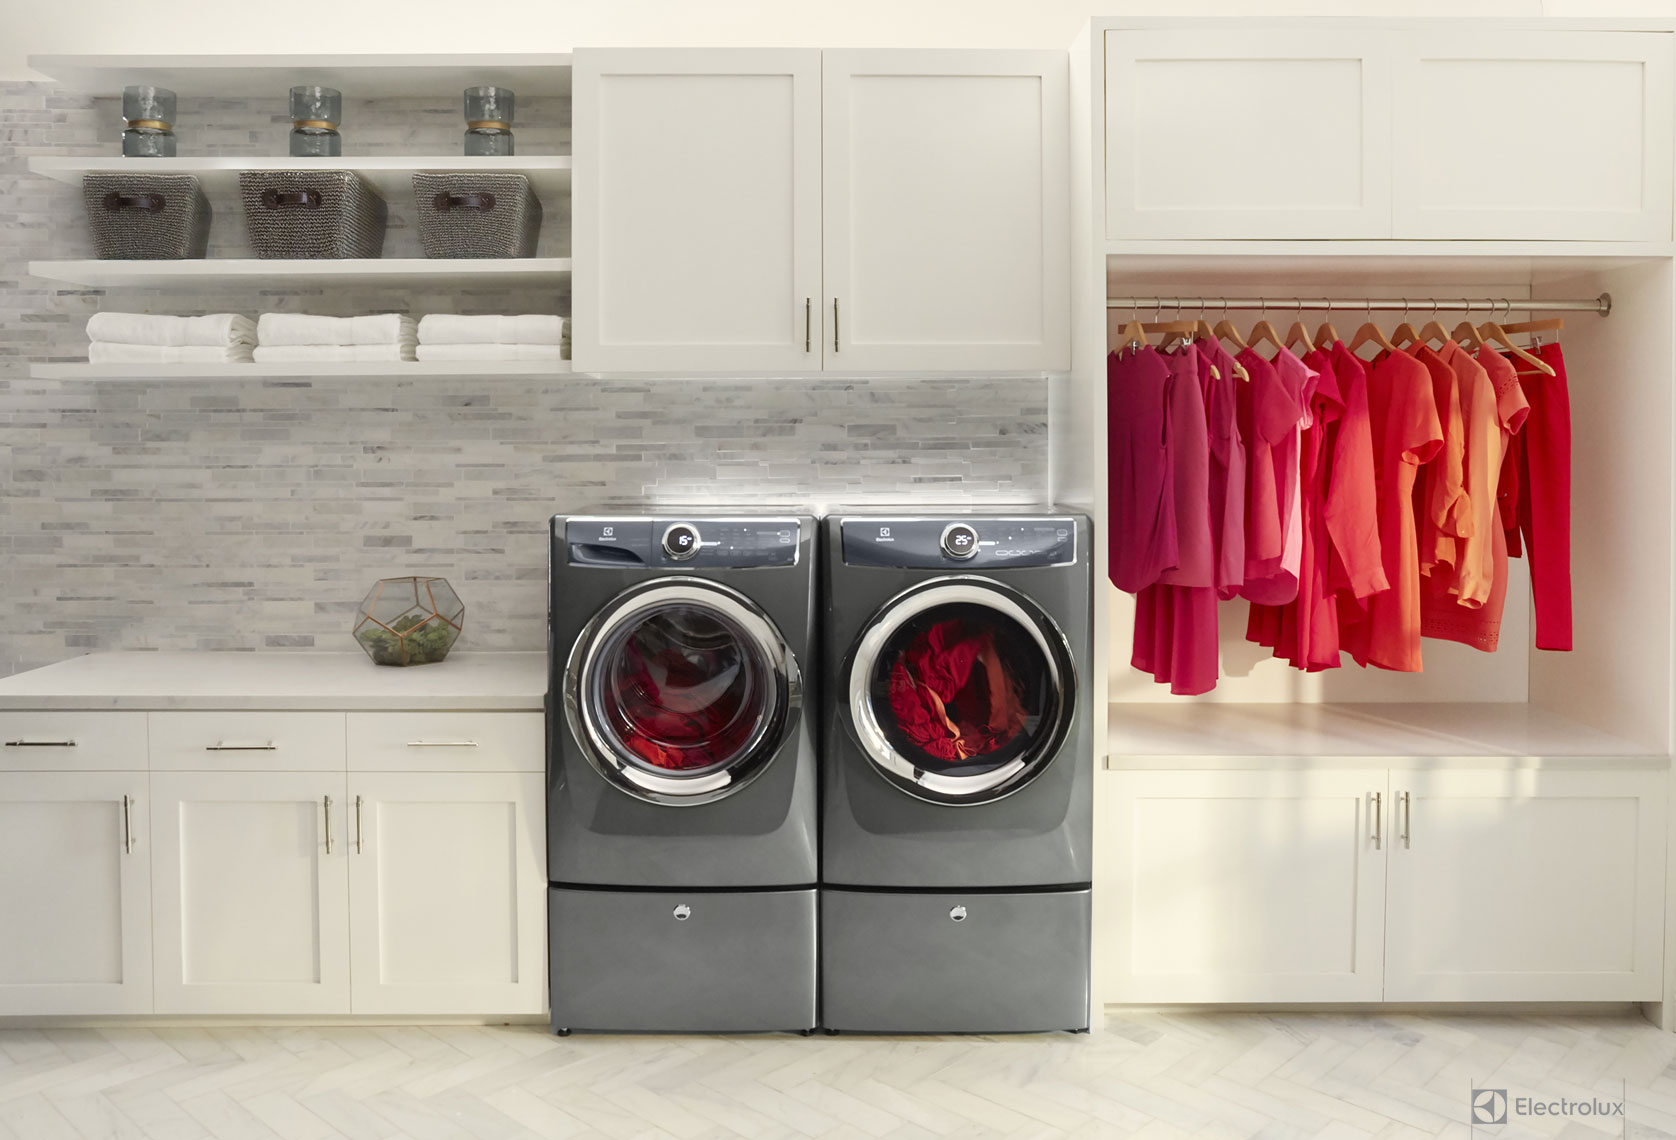 04_Photo-08_Product_Emily-With-Laundry-Pair_0272_v2